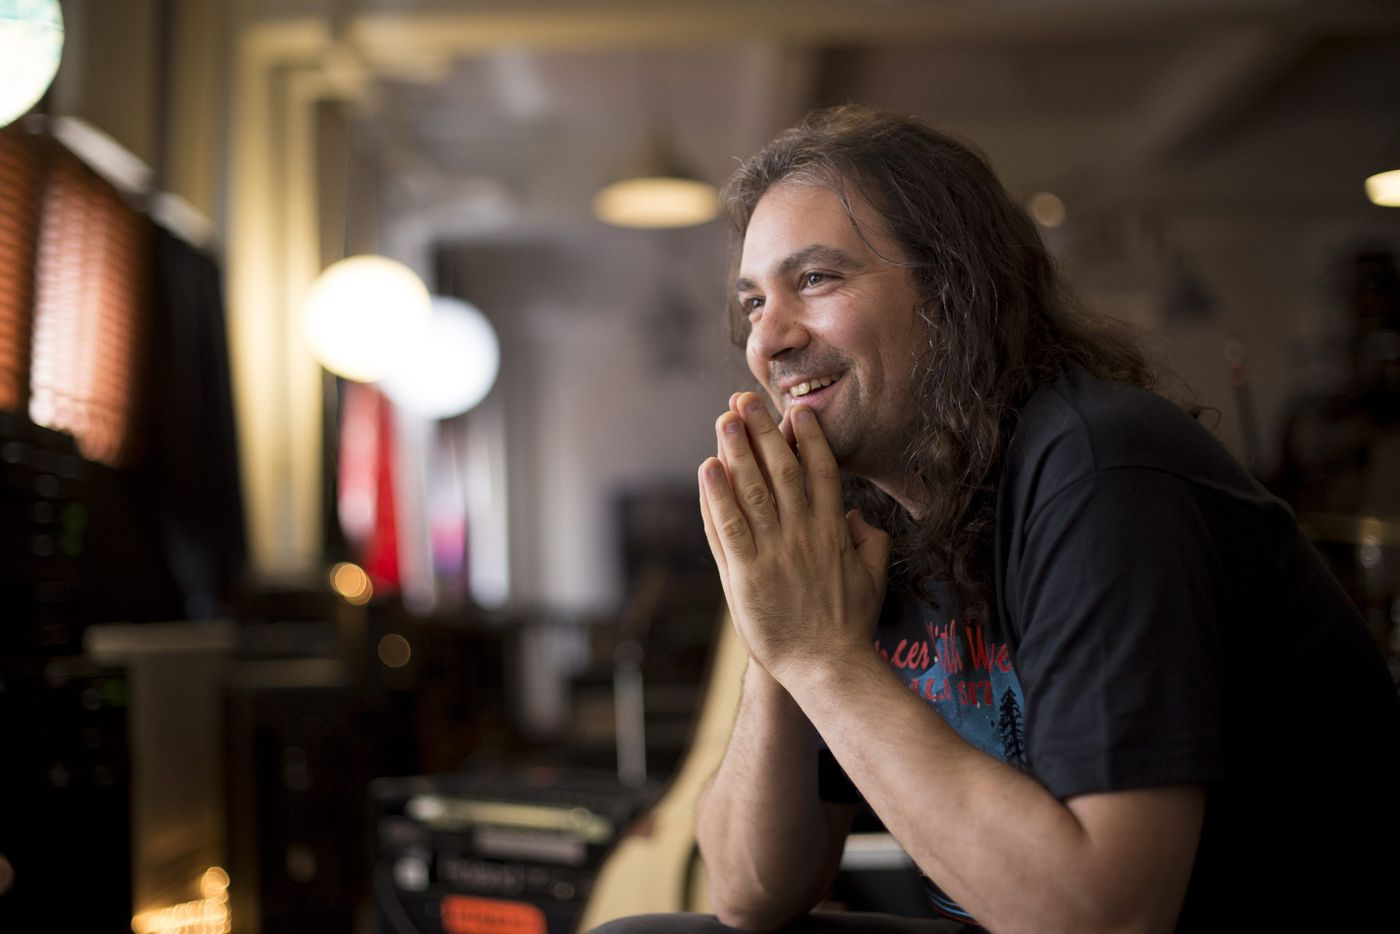 Philly's War on Drugs announce three December benefit concerts, but their venues are a mystery